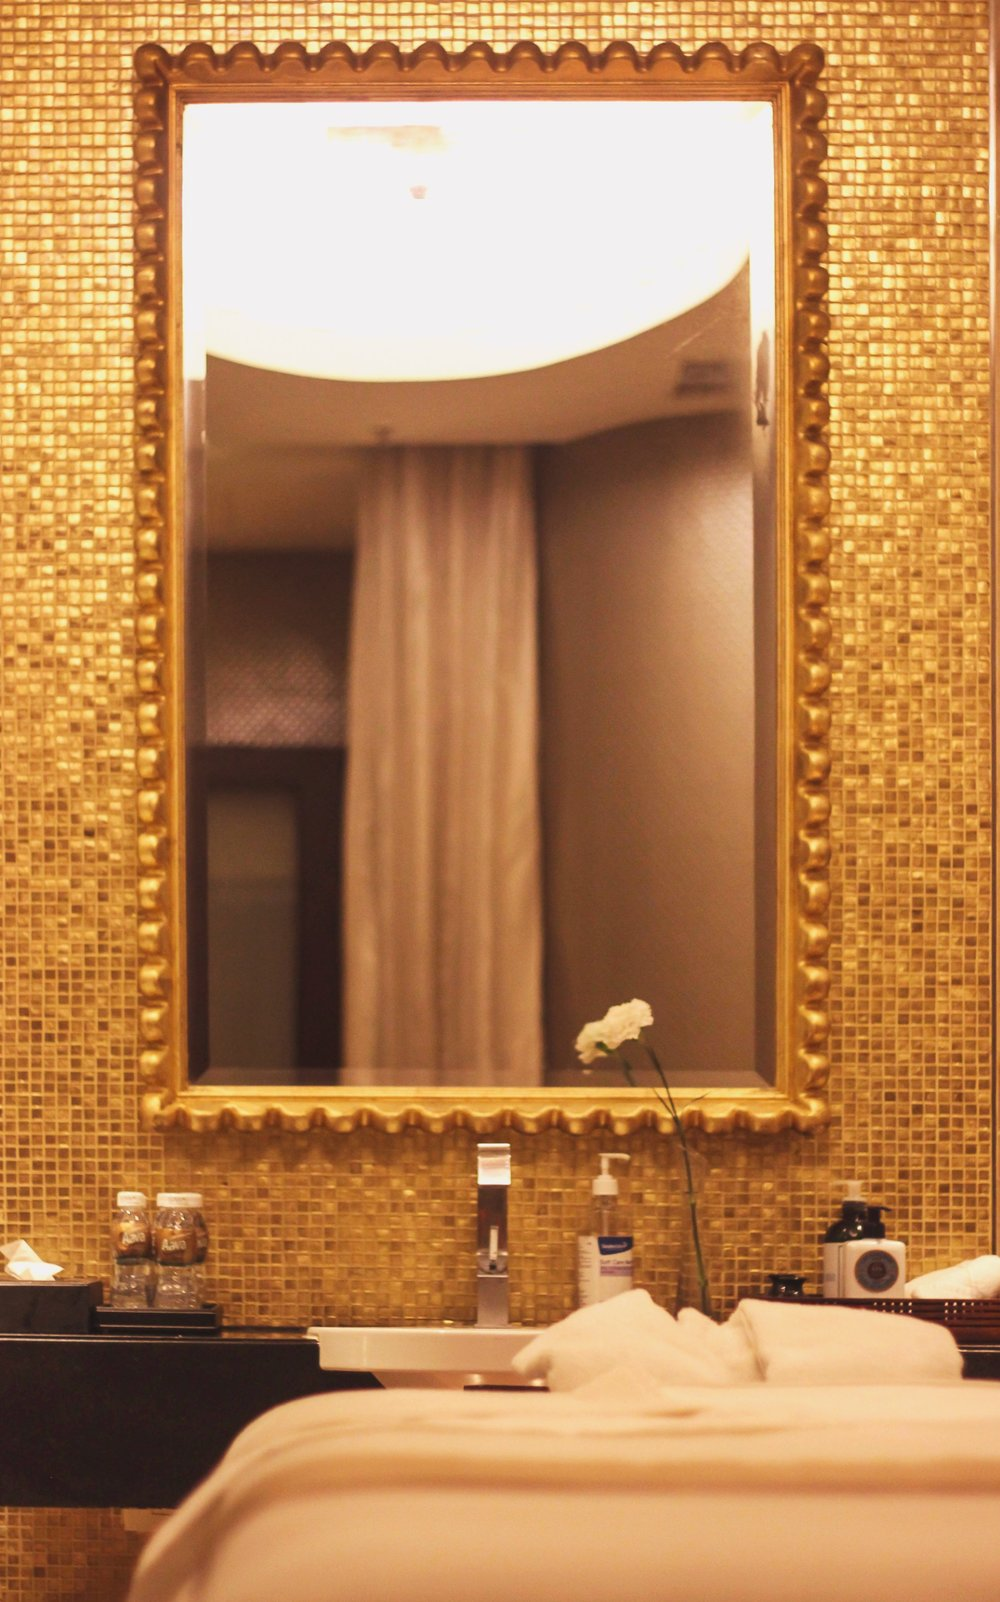 sofitel-sospa-the-chic-armoire-nidhi-kunder-5